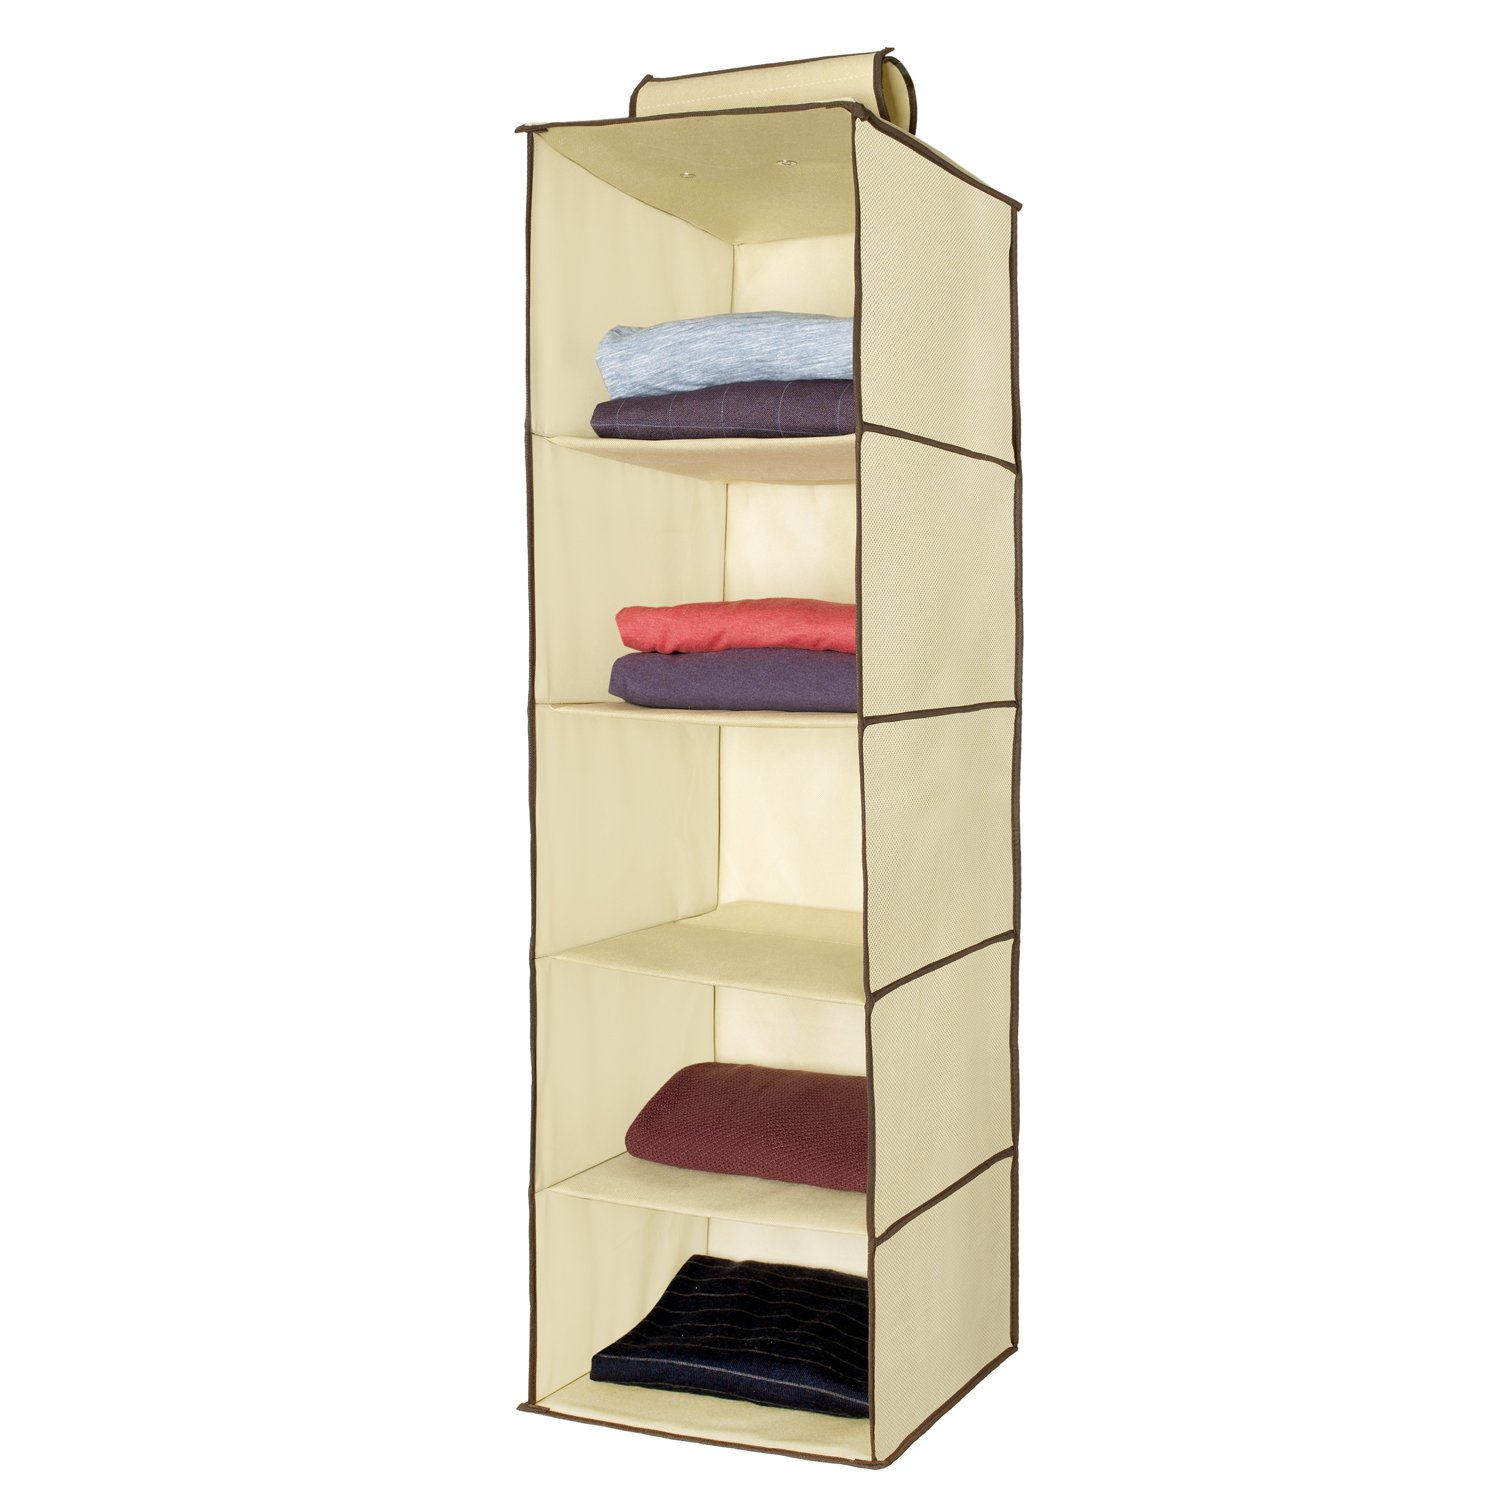 Amazon.com: Ziz Home Hanging Closet Organizer | 5 Shelf Beige | Closet  Hanging Organizer | Closet Organizer Hanging Shelves | Sweater Hanging  Organizer ...